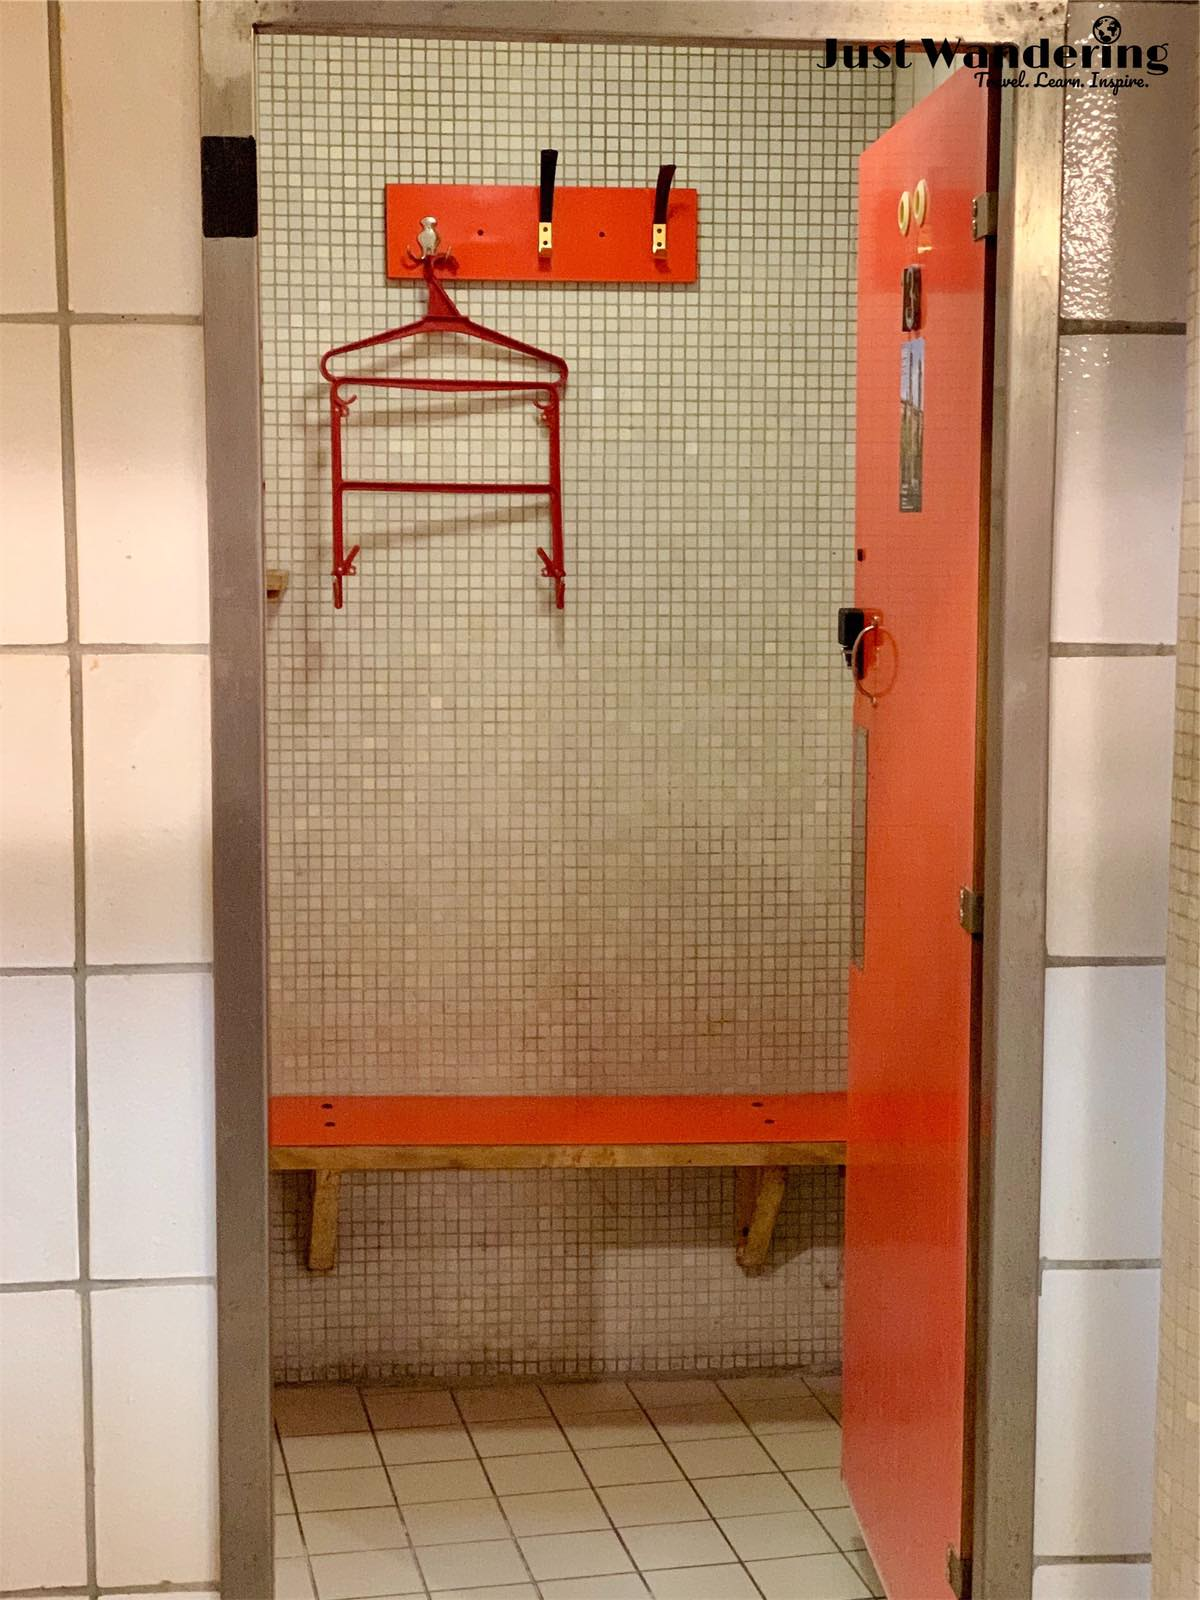 - As with most bathhouses in Budapest, your entrance fee depends on whether you choose a locker to store your belongings, or a private 'cabin' changing room to use for the duration of your stay for a higher price. I always recommend the cabin for the extra private space!